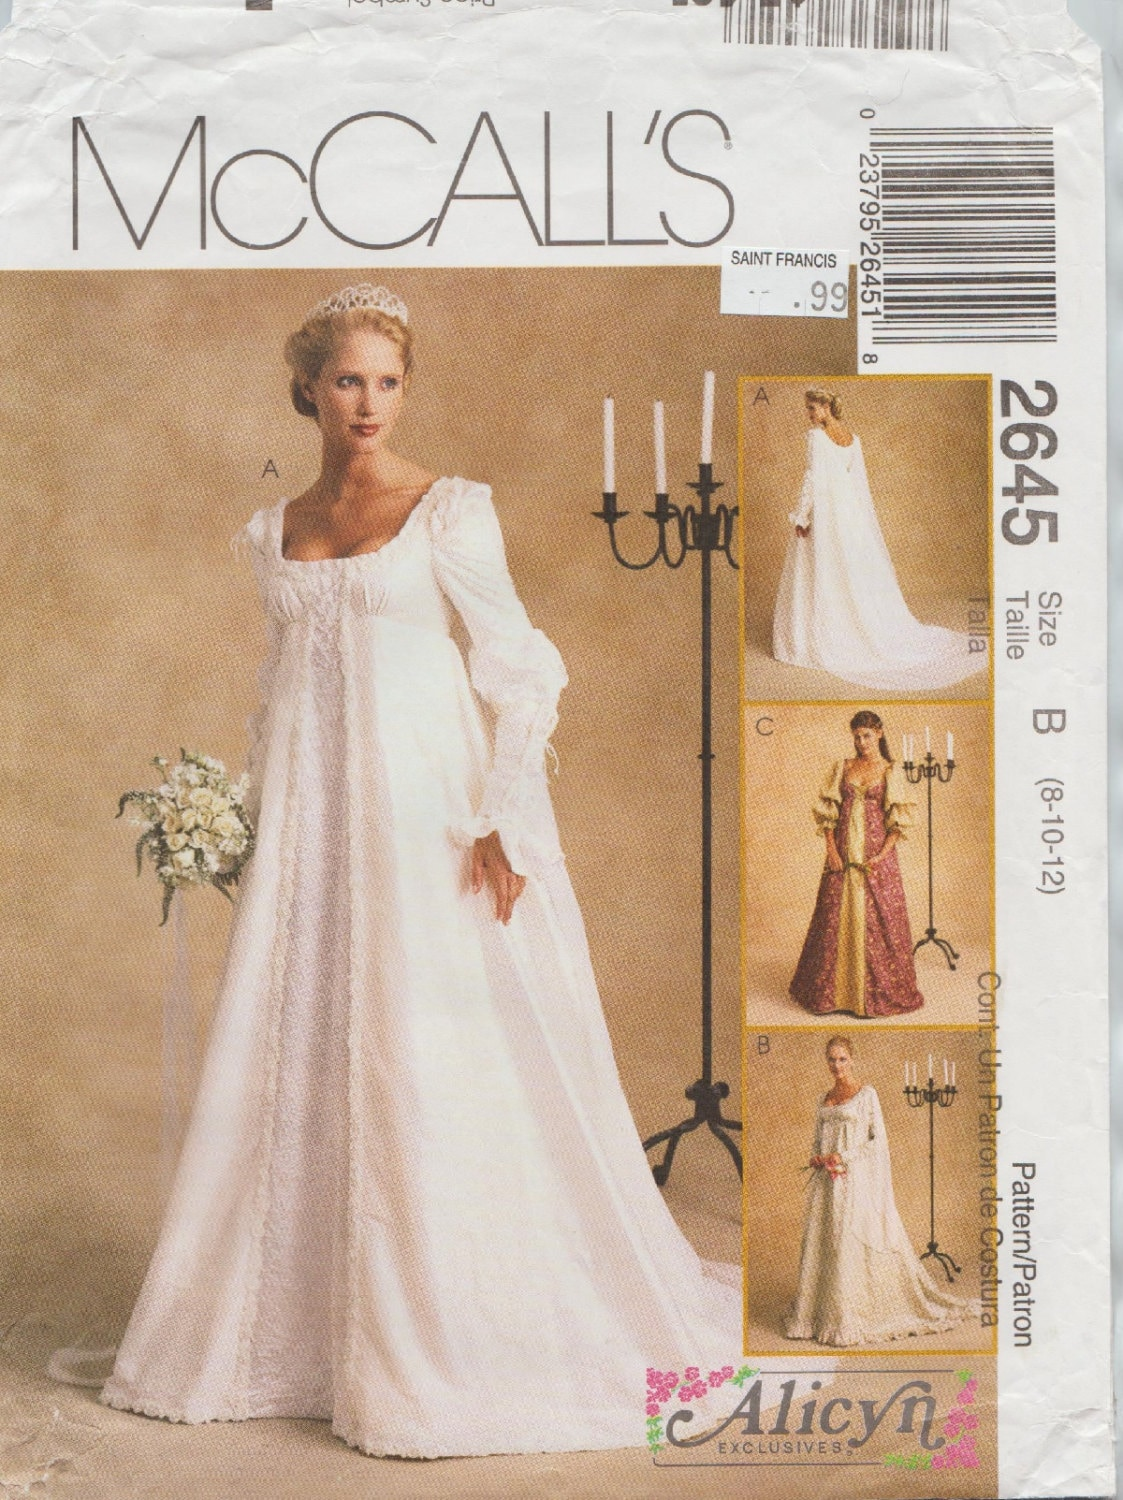 McCalls 2645 / out of Print Schnittmuster entworfen von Alicyn